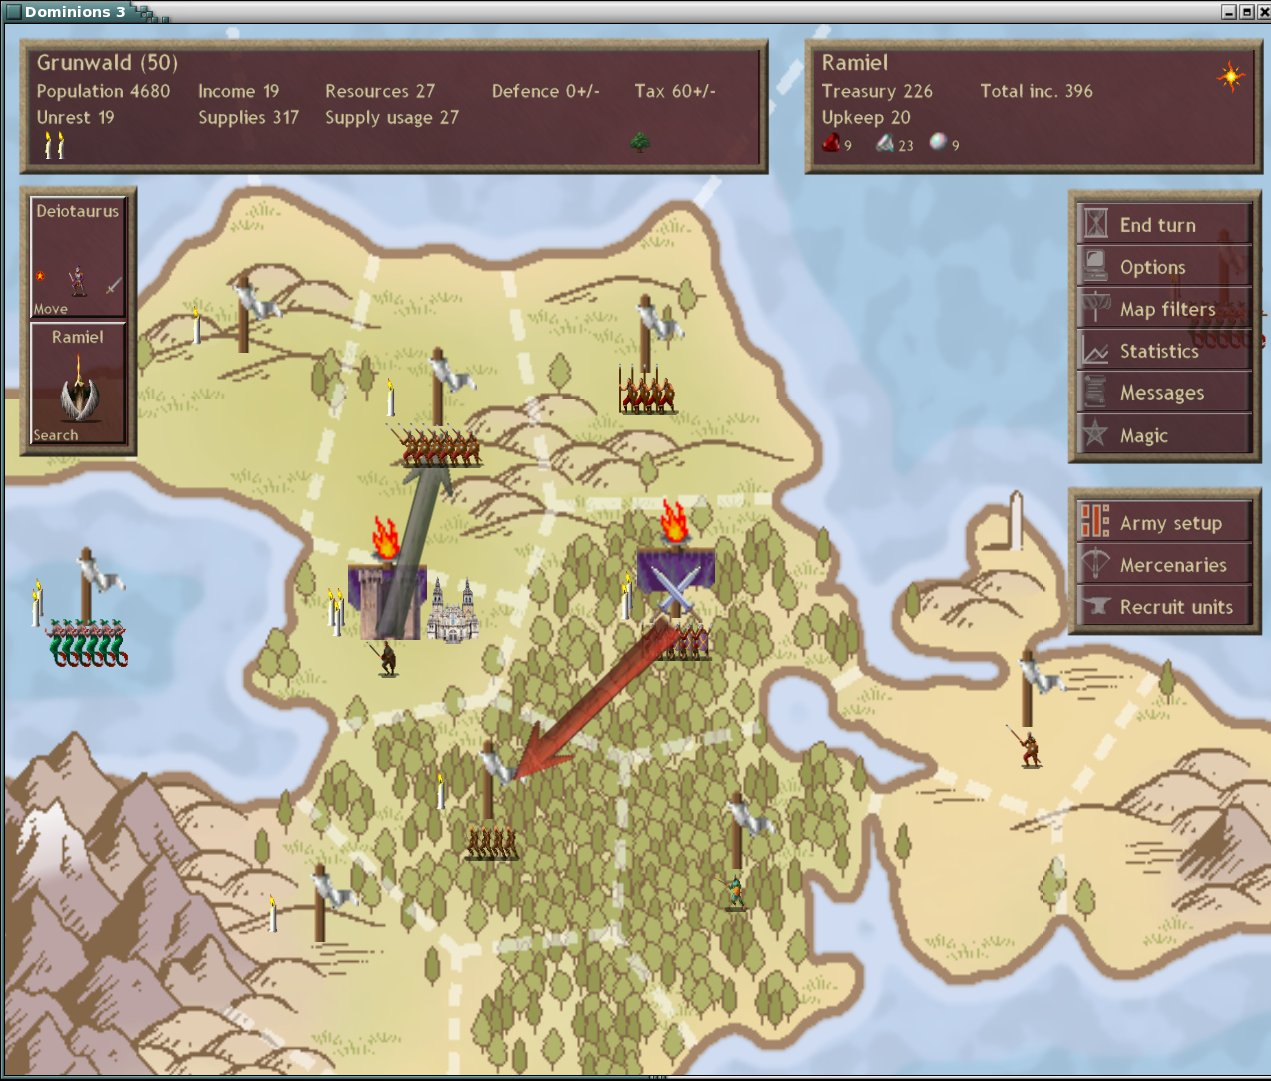 Dominions 3: The Awakening screenshot